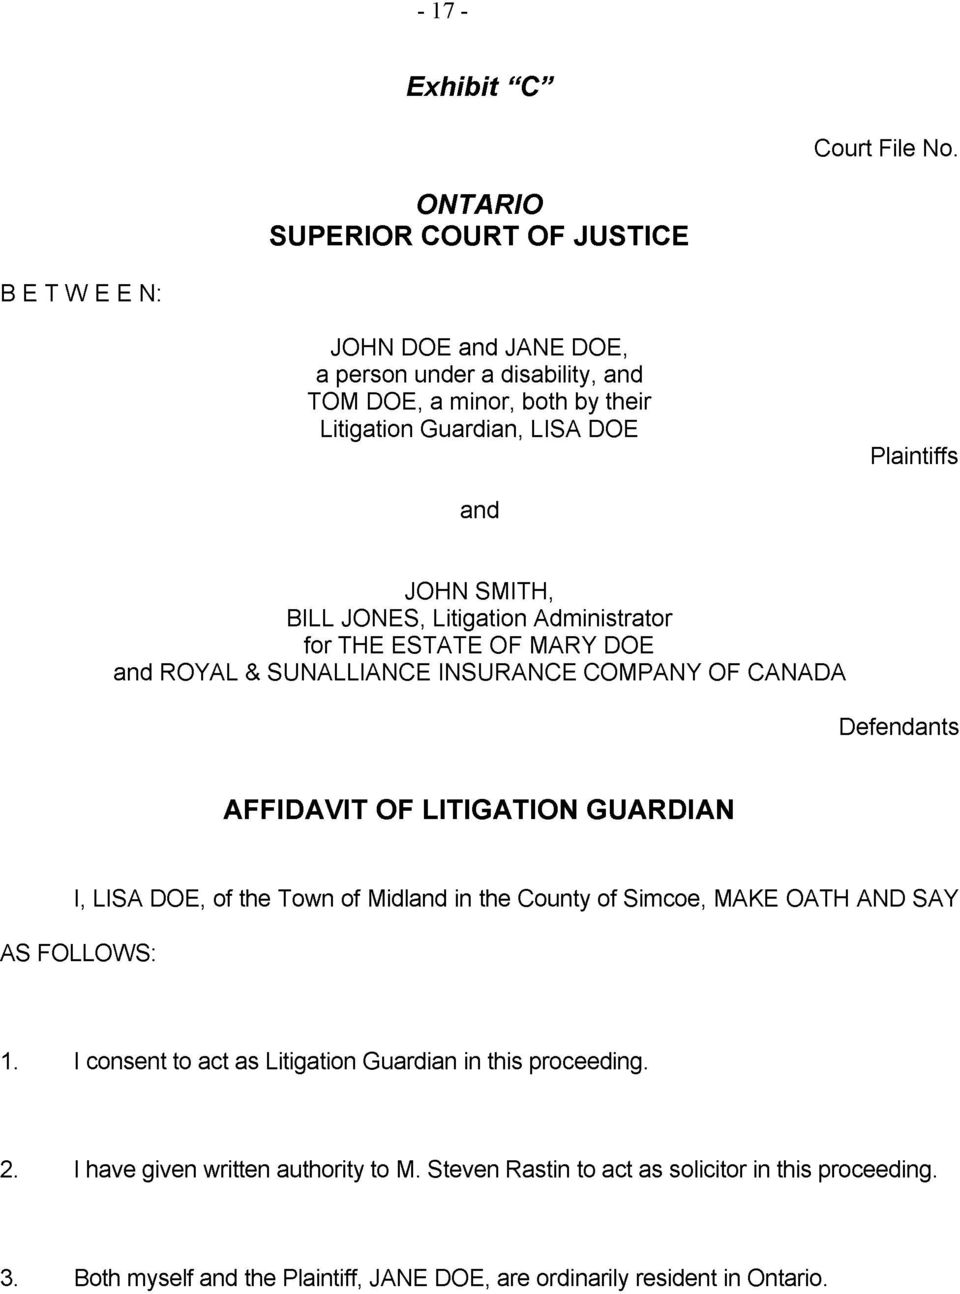 AFFIDAVIT OF LITIGATION GUARDIAN I LISA DOE of the Town of Midland in the County of Simcoe MAKE OATH AND SAY AS FOLLOWS 1 I consent to act as Litigation Guardian in this